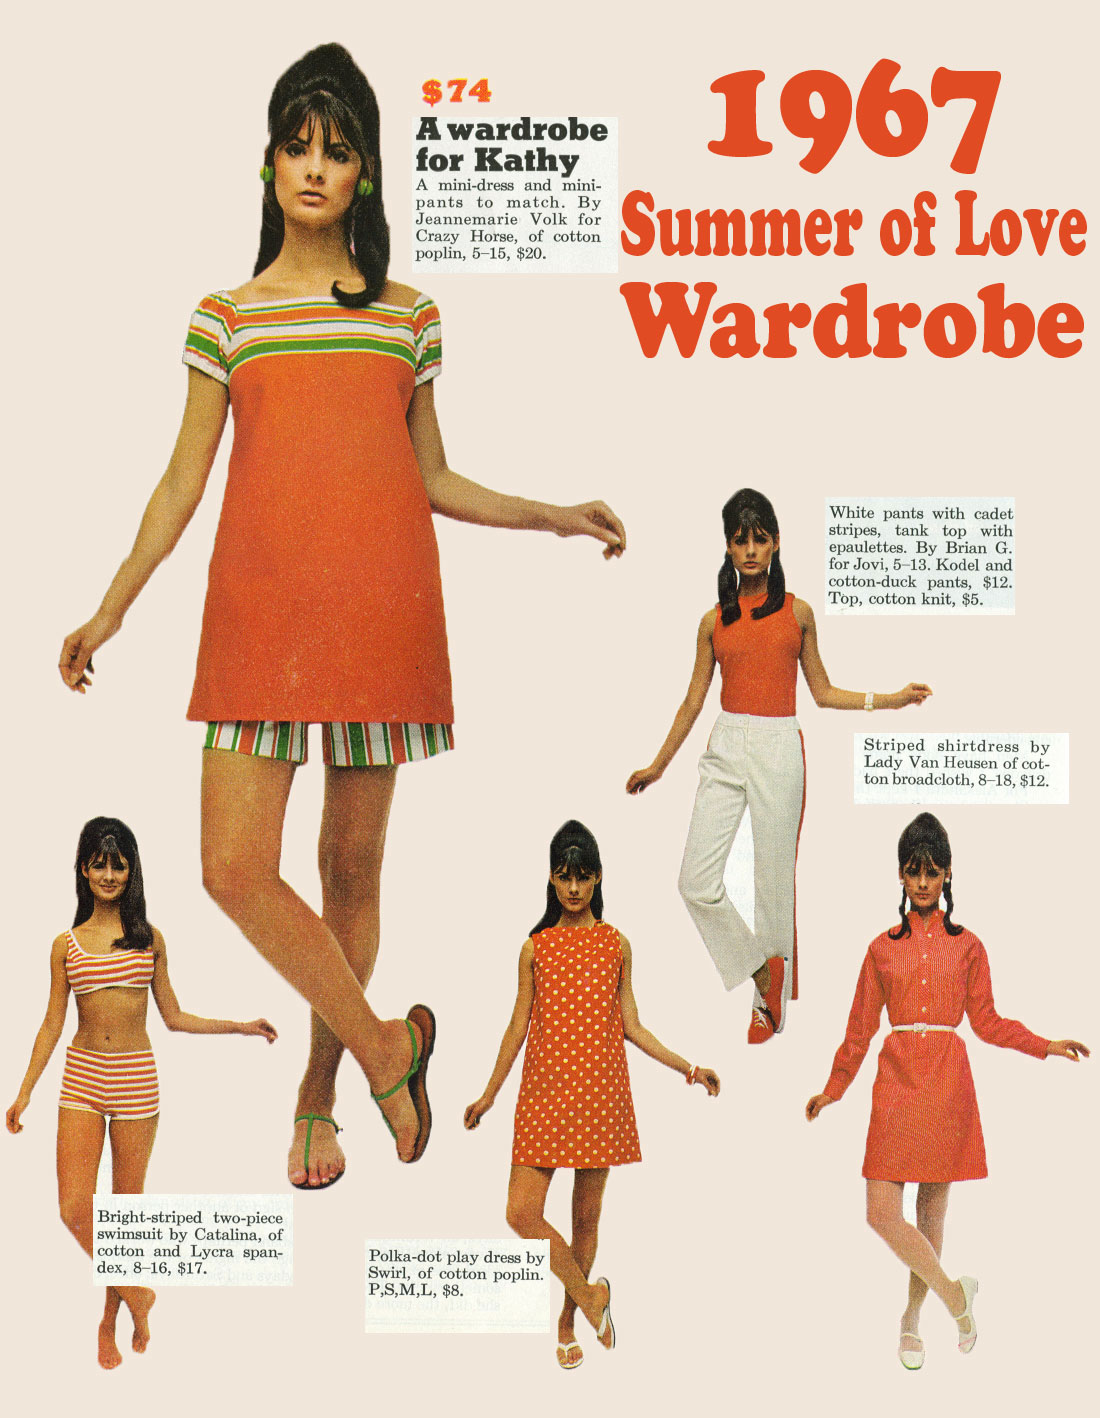 1967 Summer Of Love Wardrobe Matthew 39 S Island Of Misfit Toys